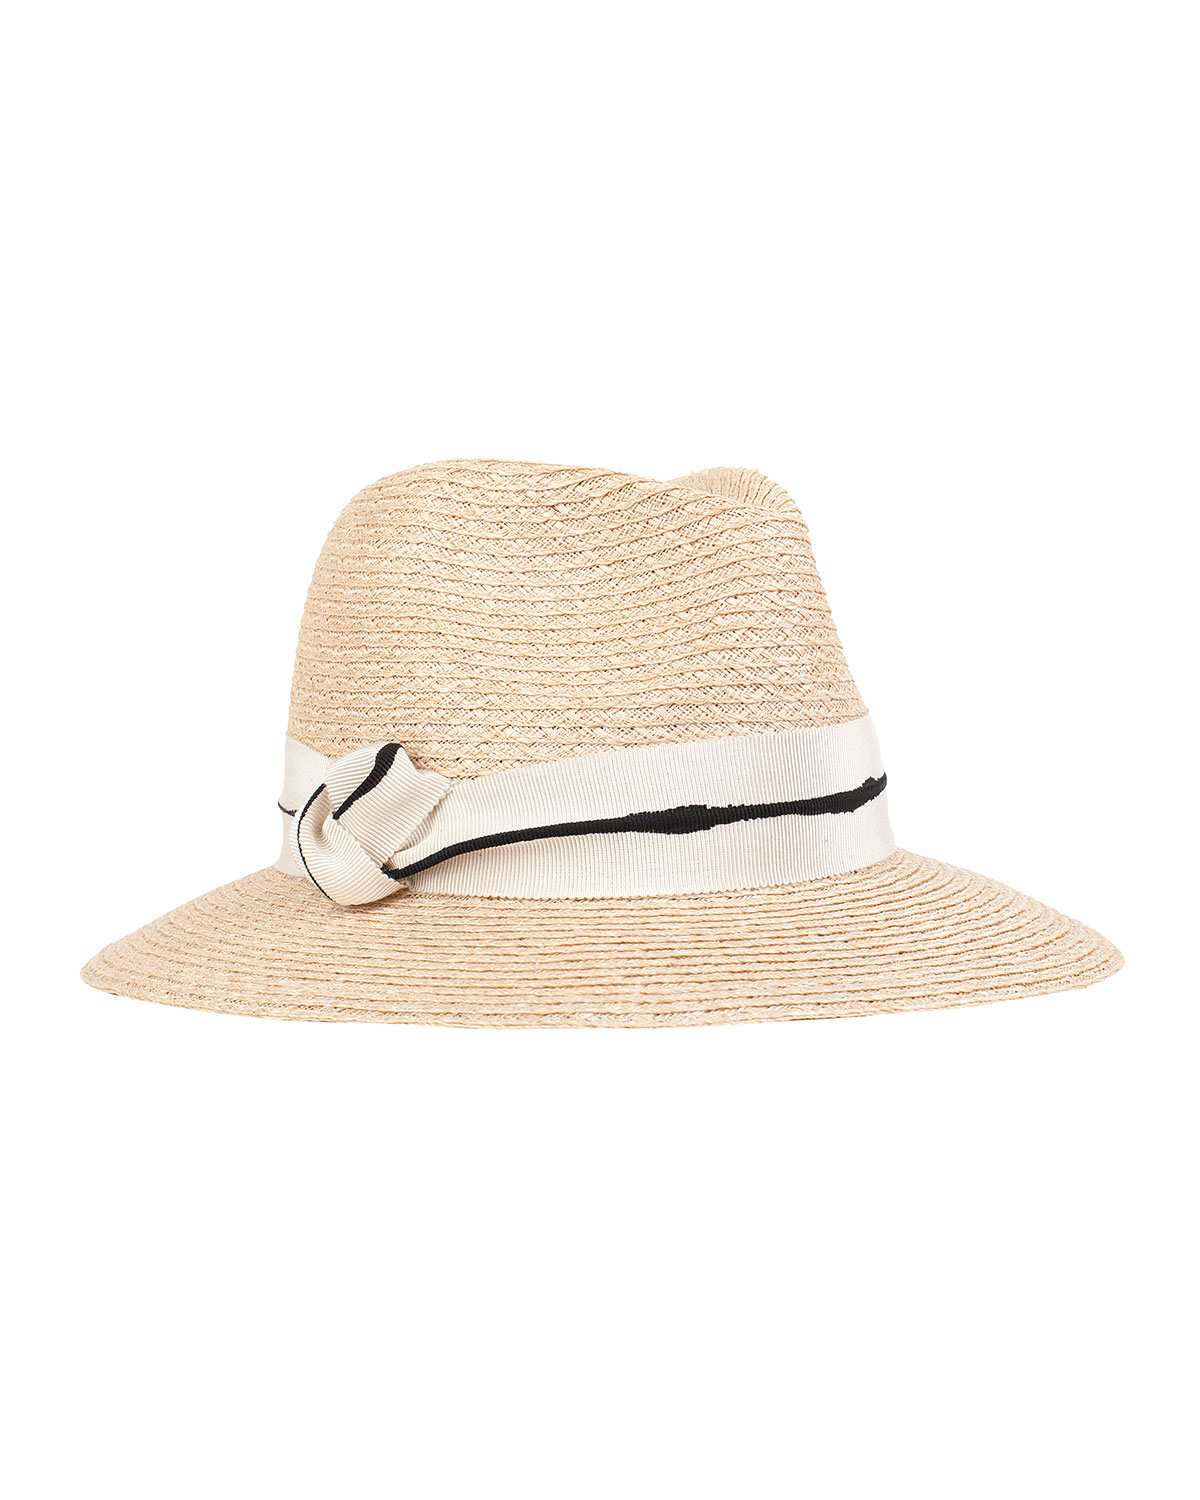 Eugenia Kim Lillian Fedora Hat w/ Knotted Band, Natural, Size: M